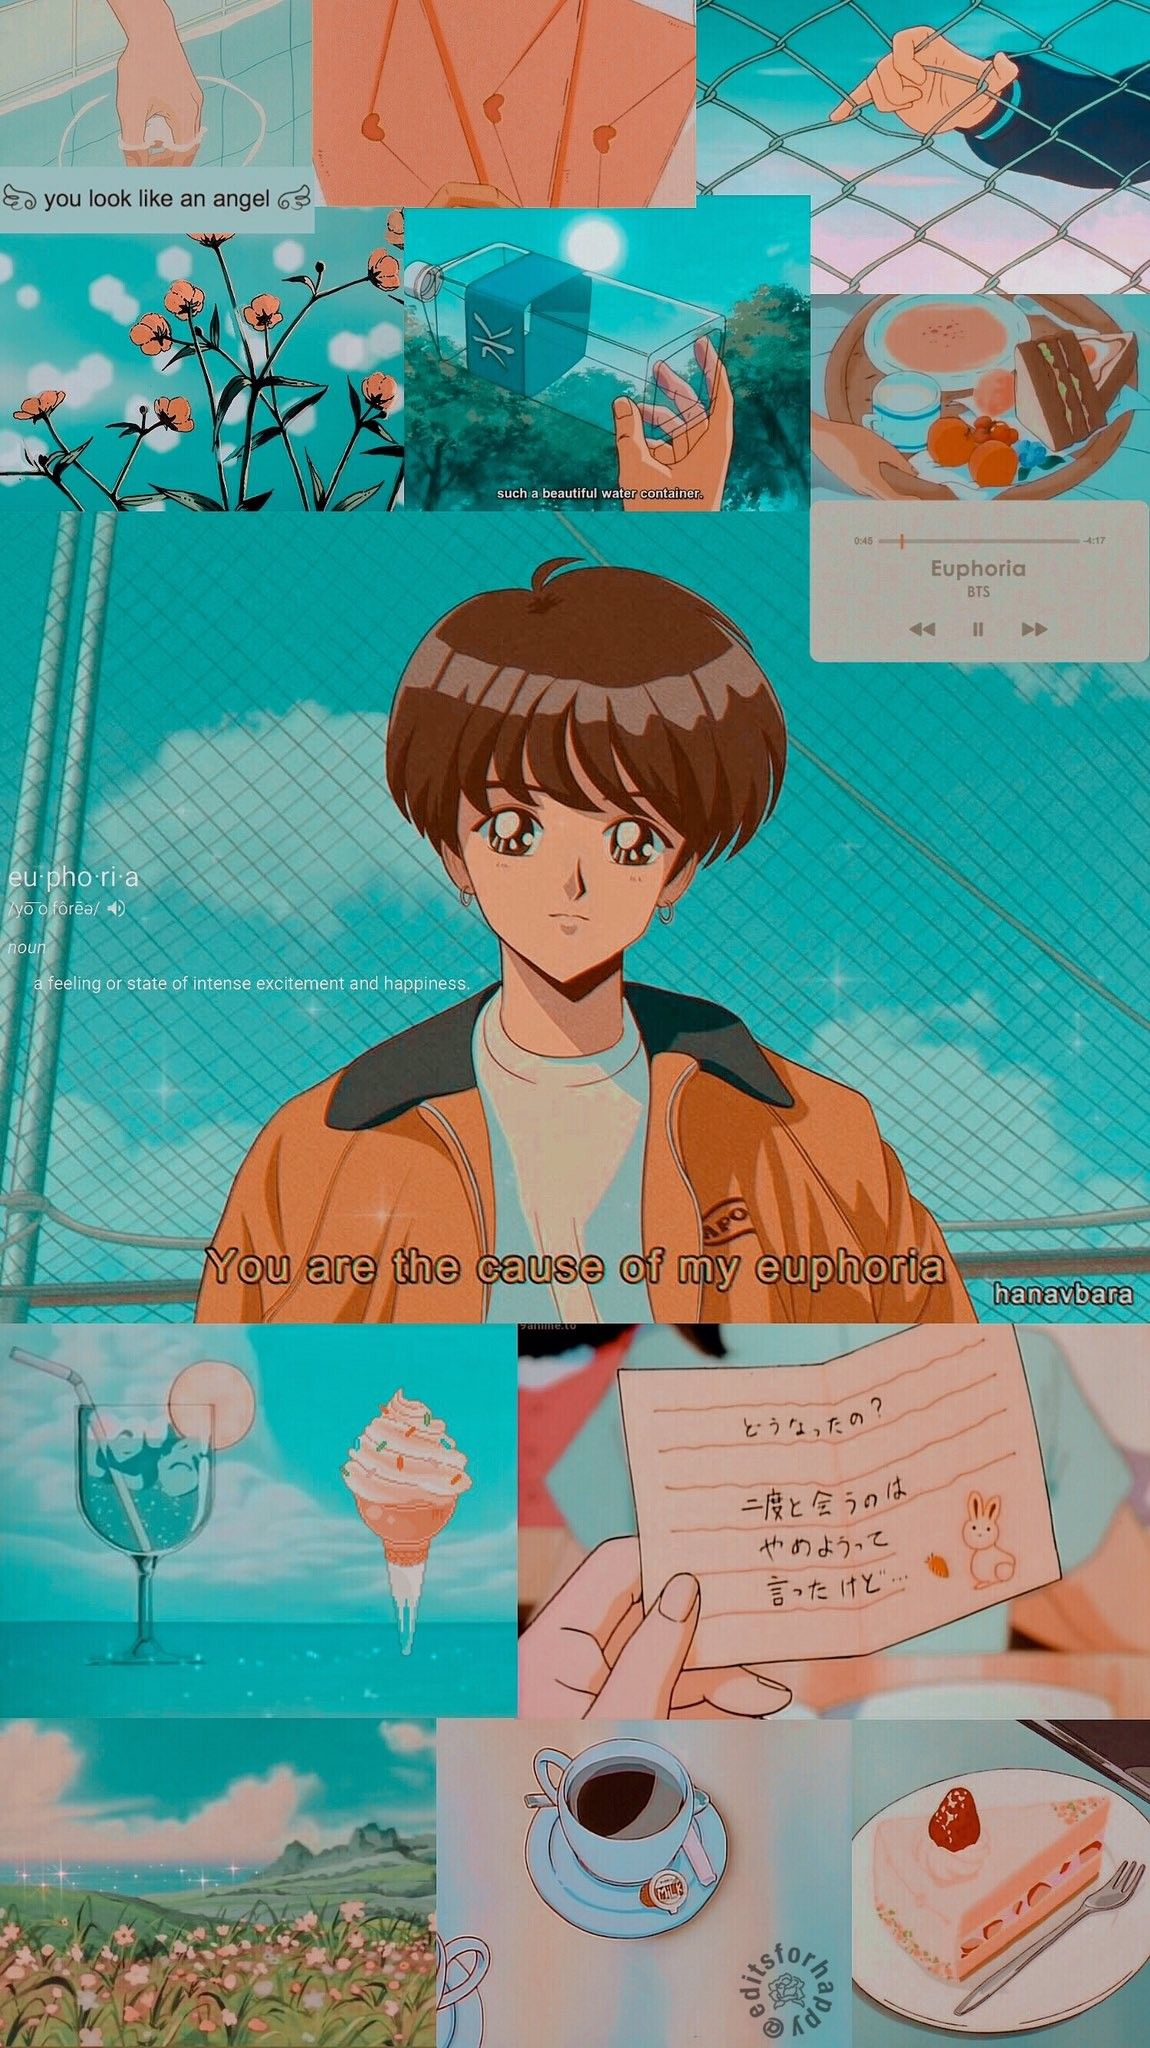 Jungkook Aesthetic Anime Wallpaper Credits to twitter